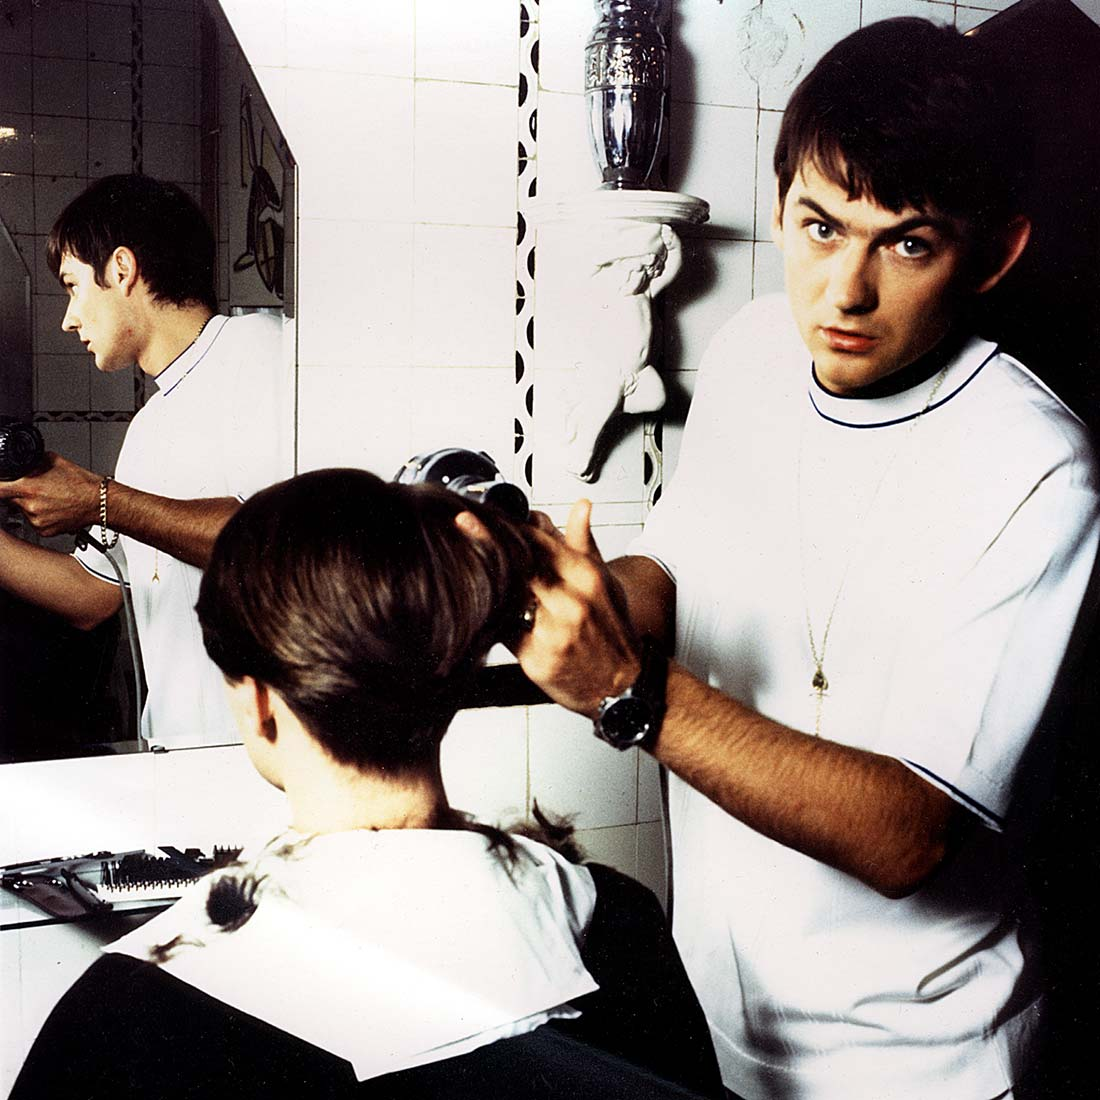 Paul Burfoot at work cutting hair